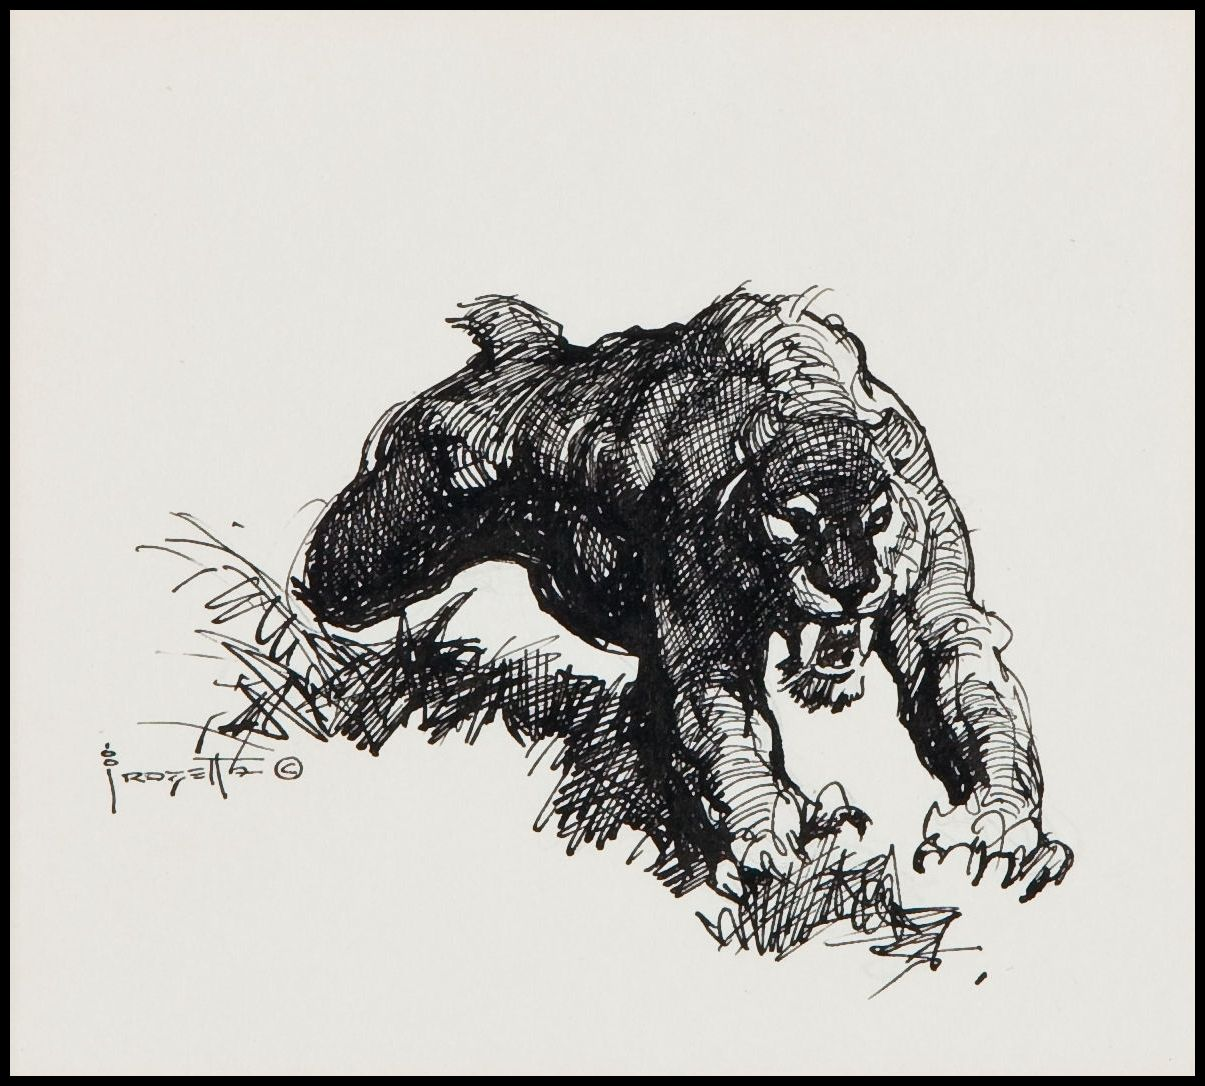 saber tooth tiger sketch by frank frazetta 1970 u0027s art